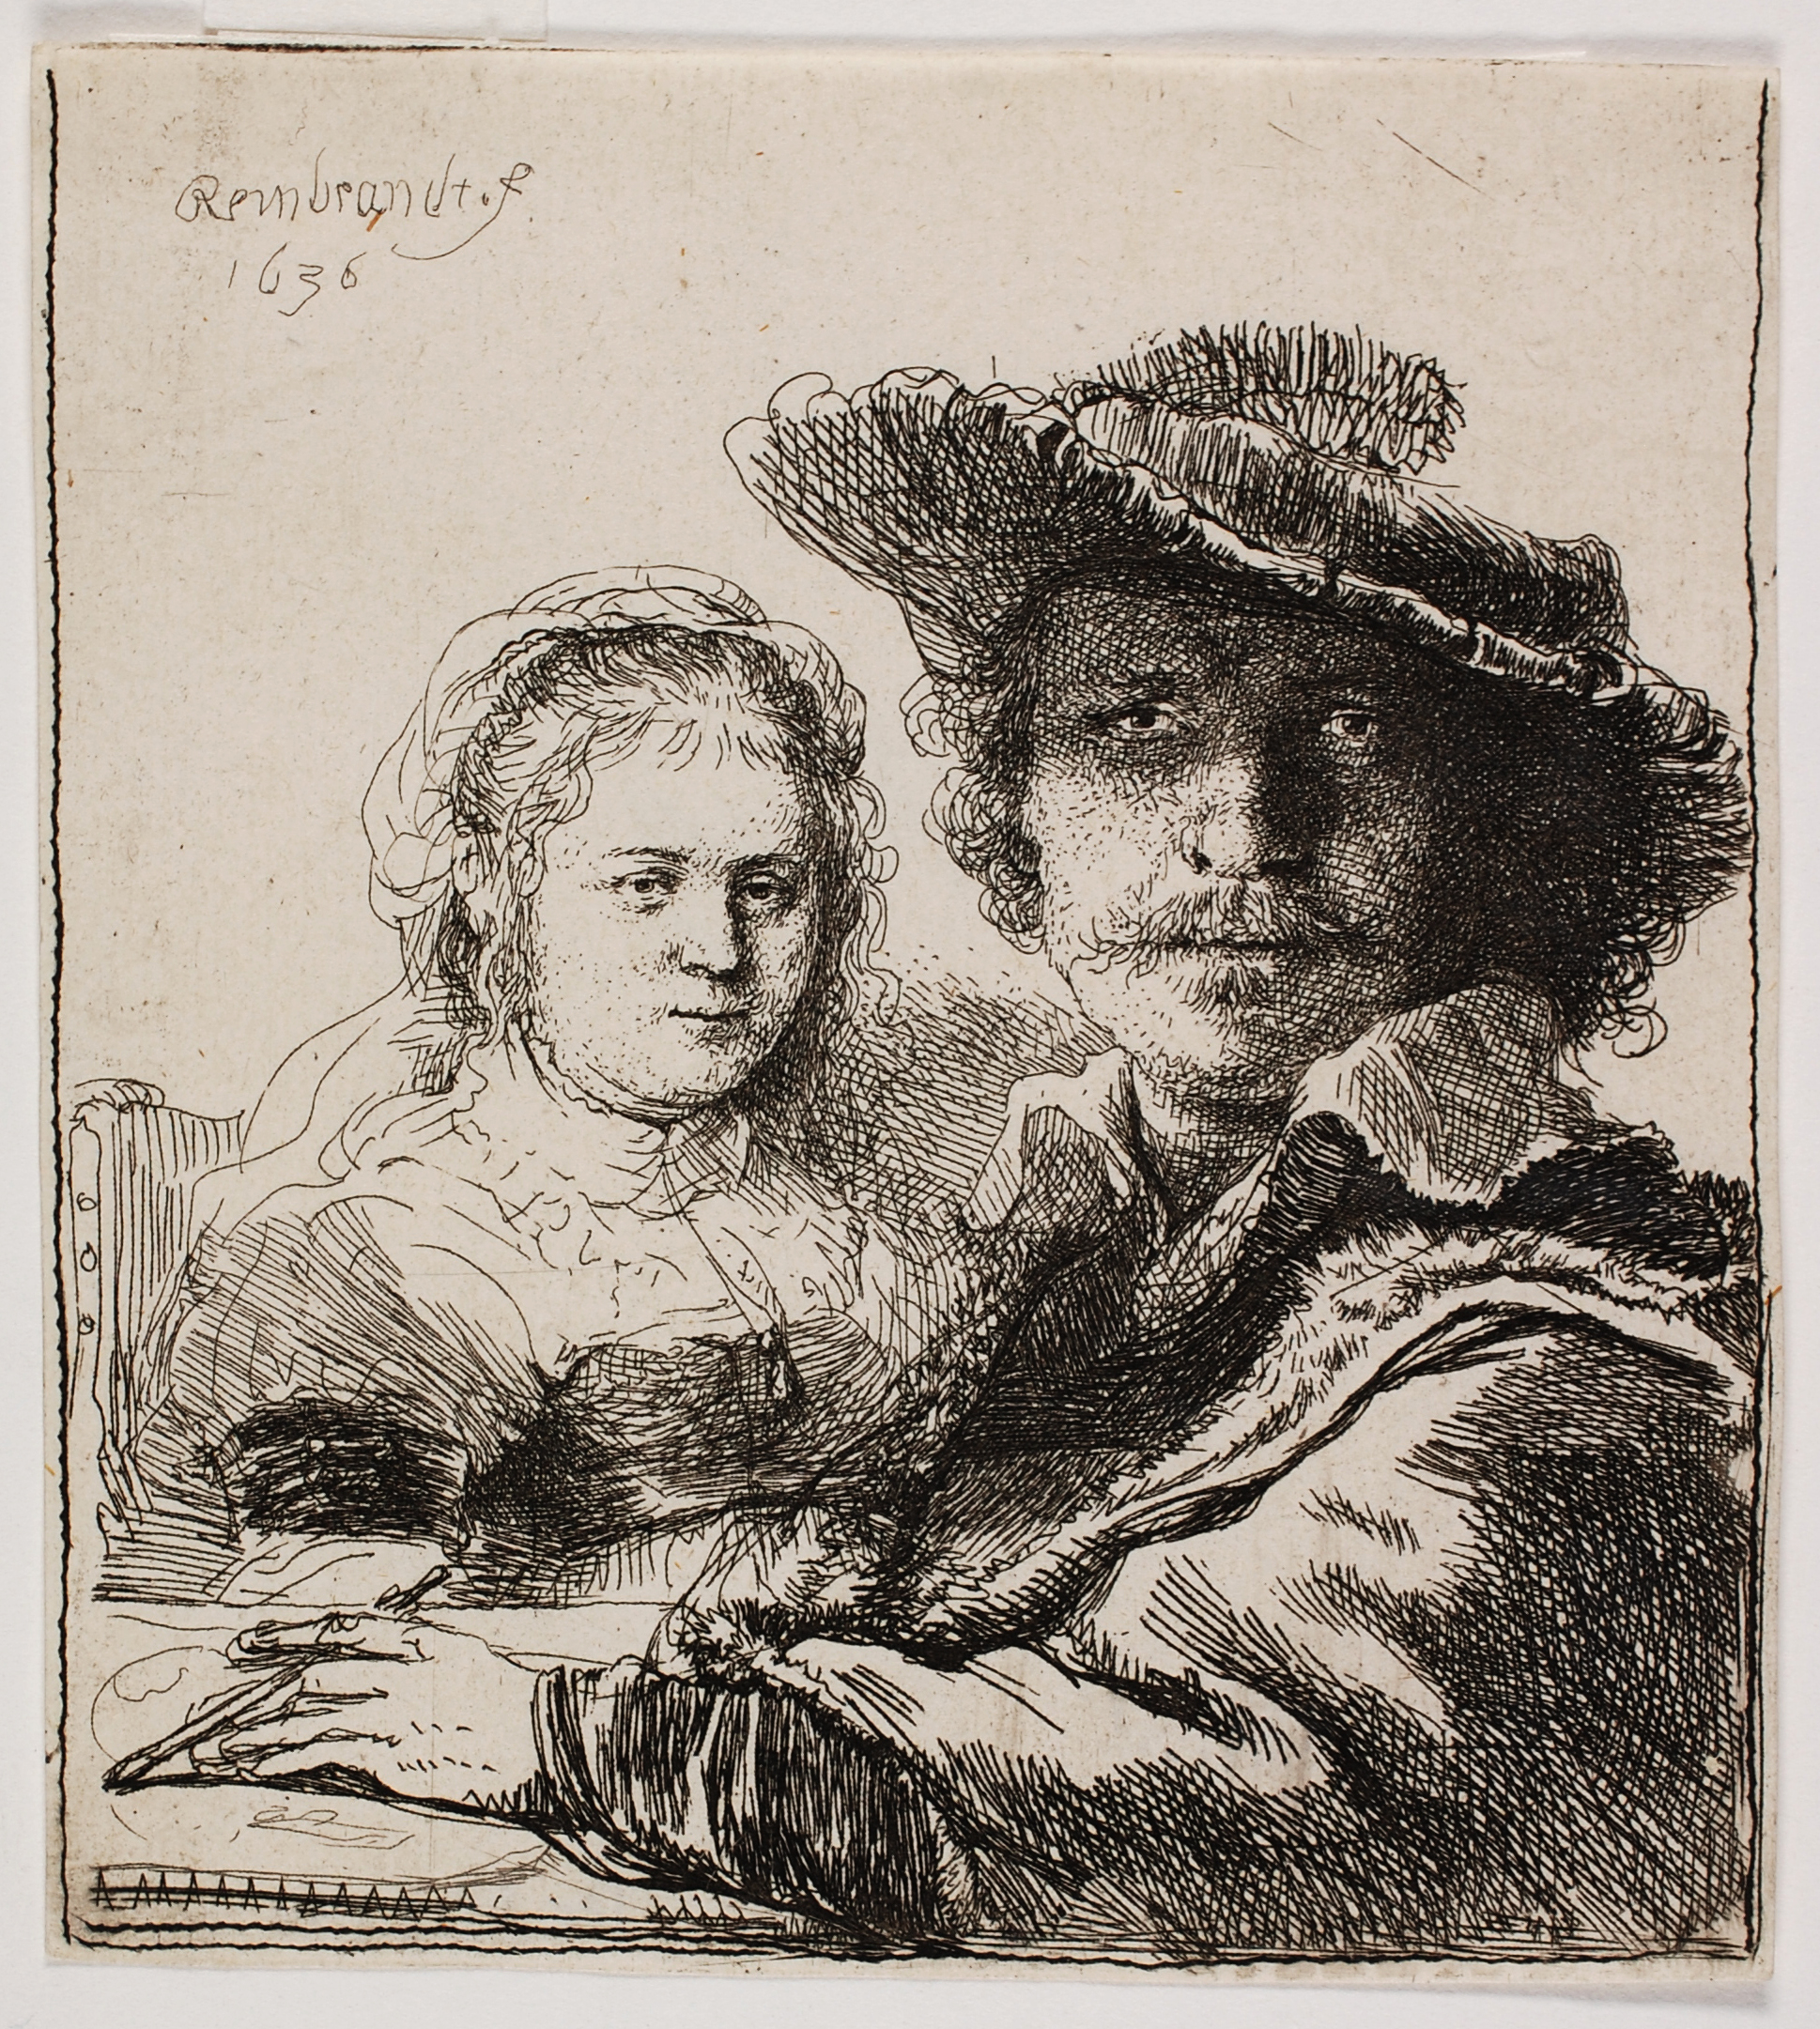 Rembrandt van Rijn, Self-Portrait with Saskia, 1636. Collection of Dordrecht Museum, on loan from Teekengenootschap Pictura